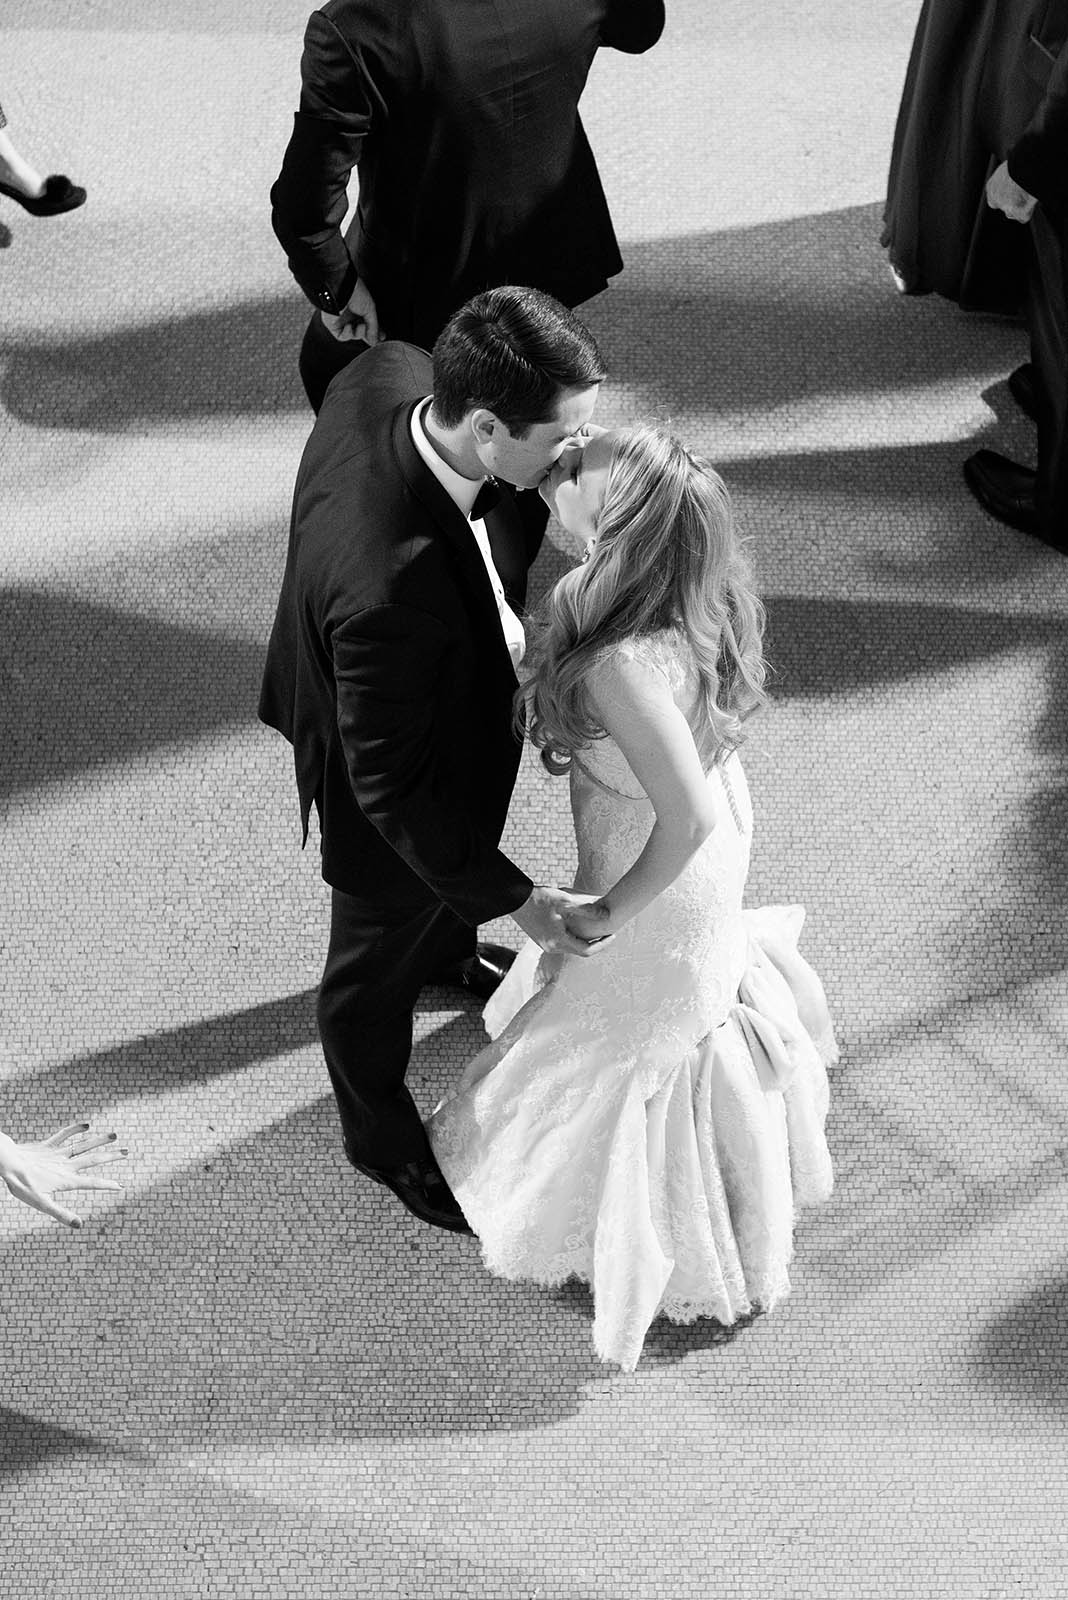 Wedding Kiss on Dance Floor